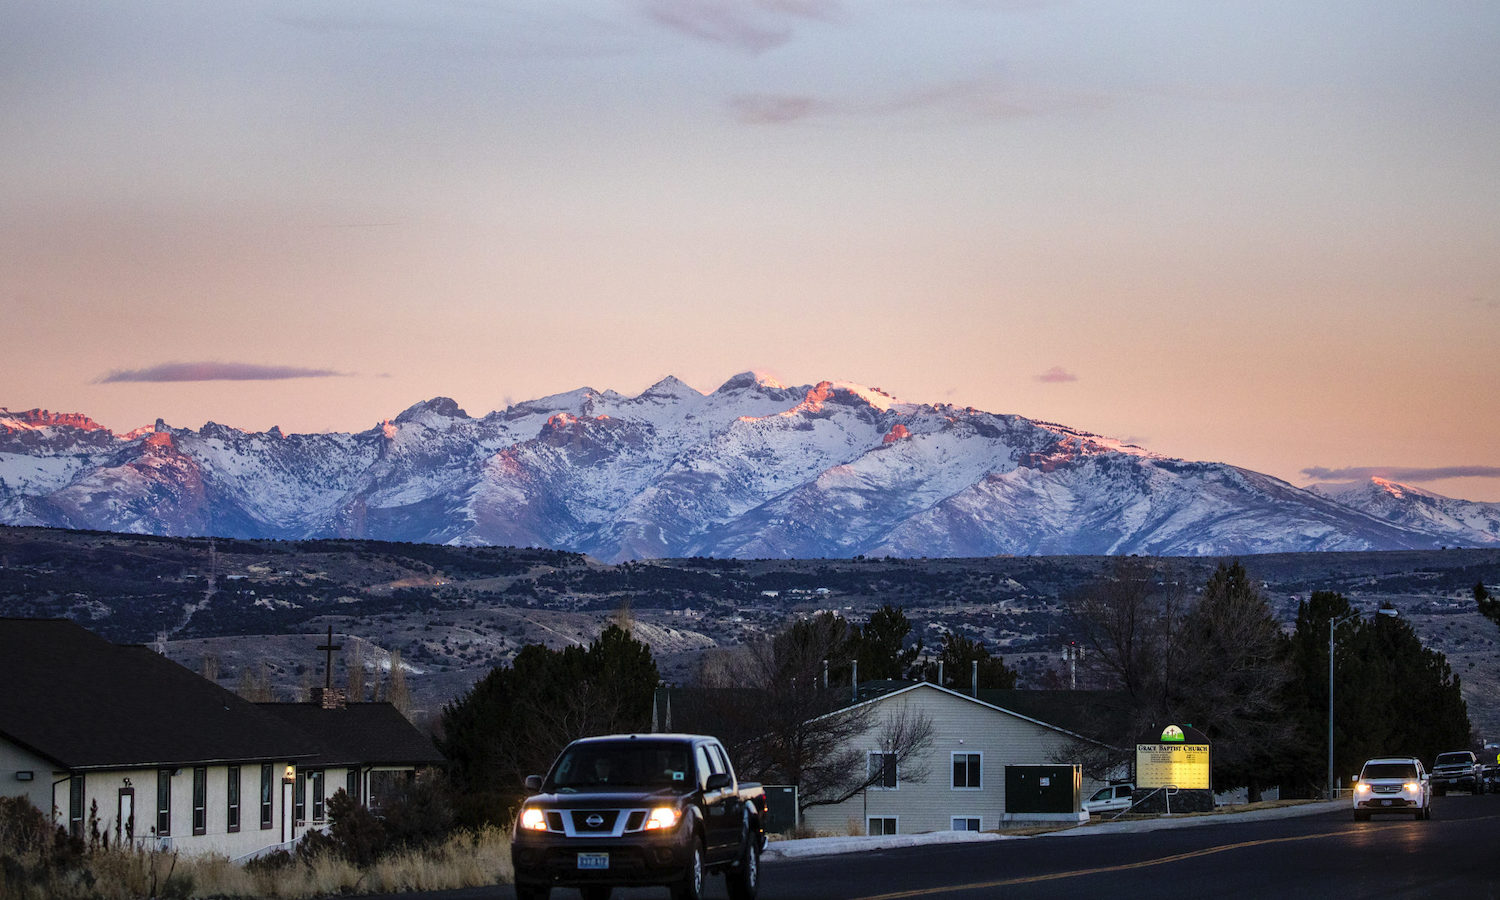 A sunset view of the Ruby Mountains as seen from Elko